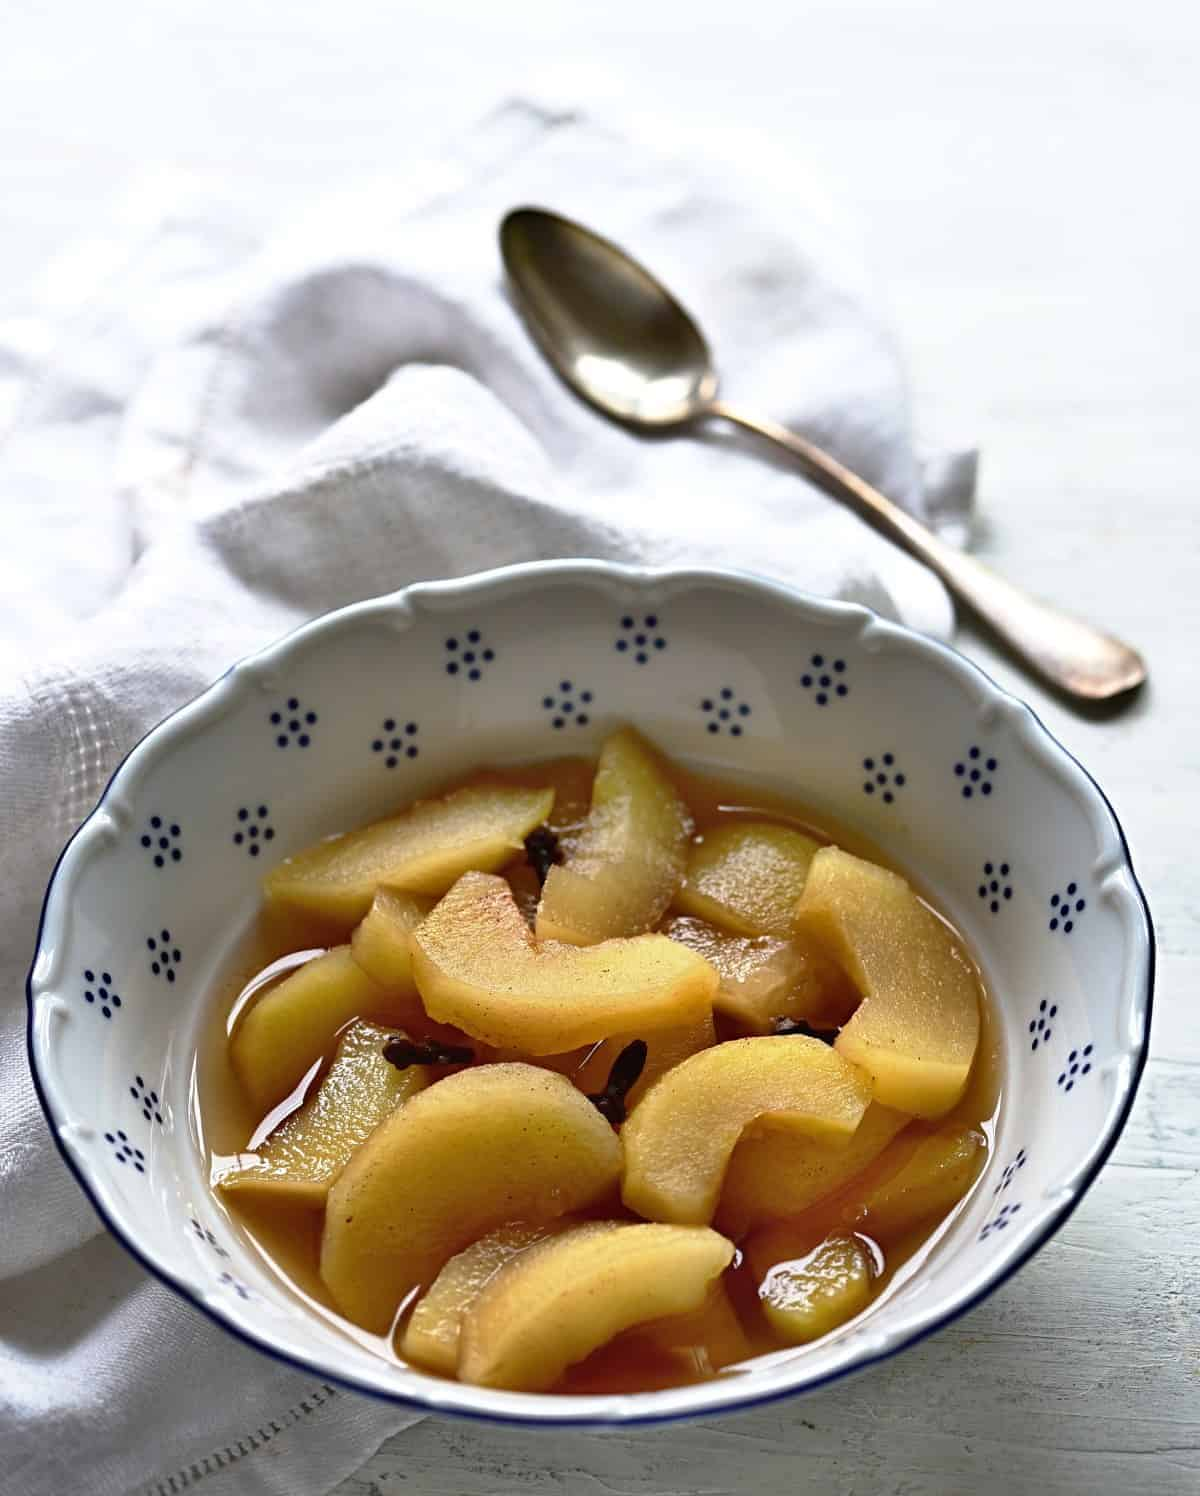 Czech spiced apple compote with cinnamon.